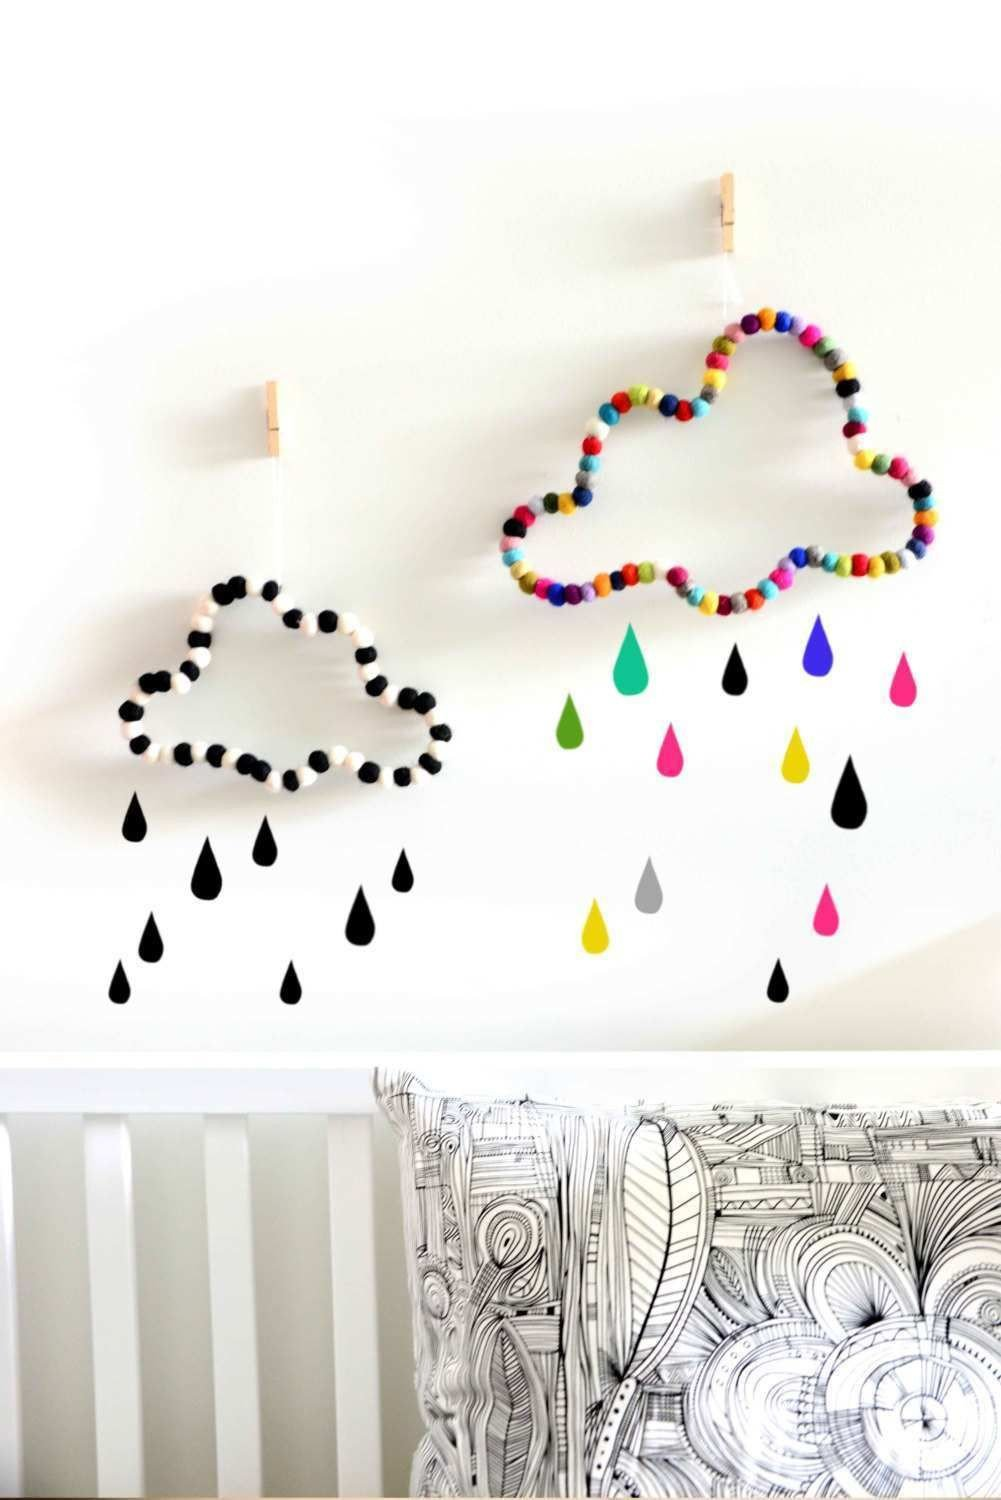 Wall Hangings for Bedroom Awesome Wall Hanging Ideas for Bedrooms Luxury Cloud Wall Decor